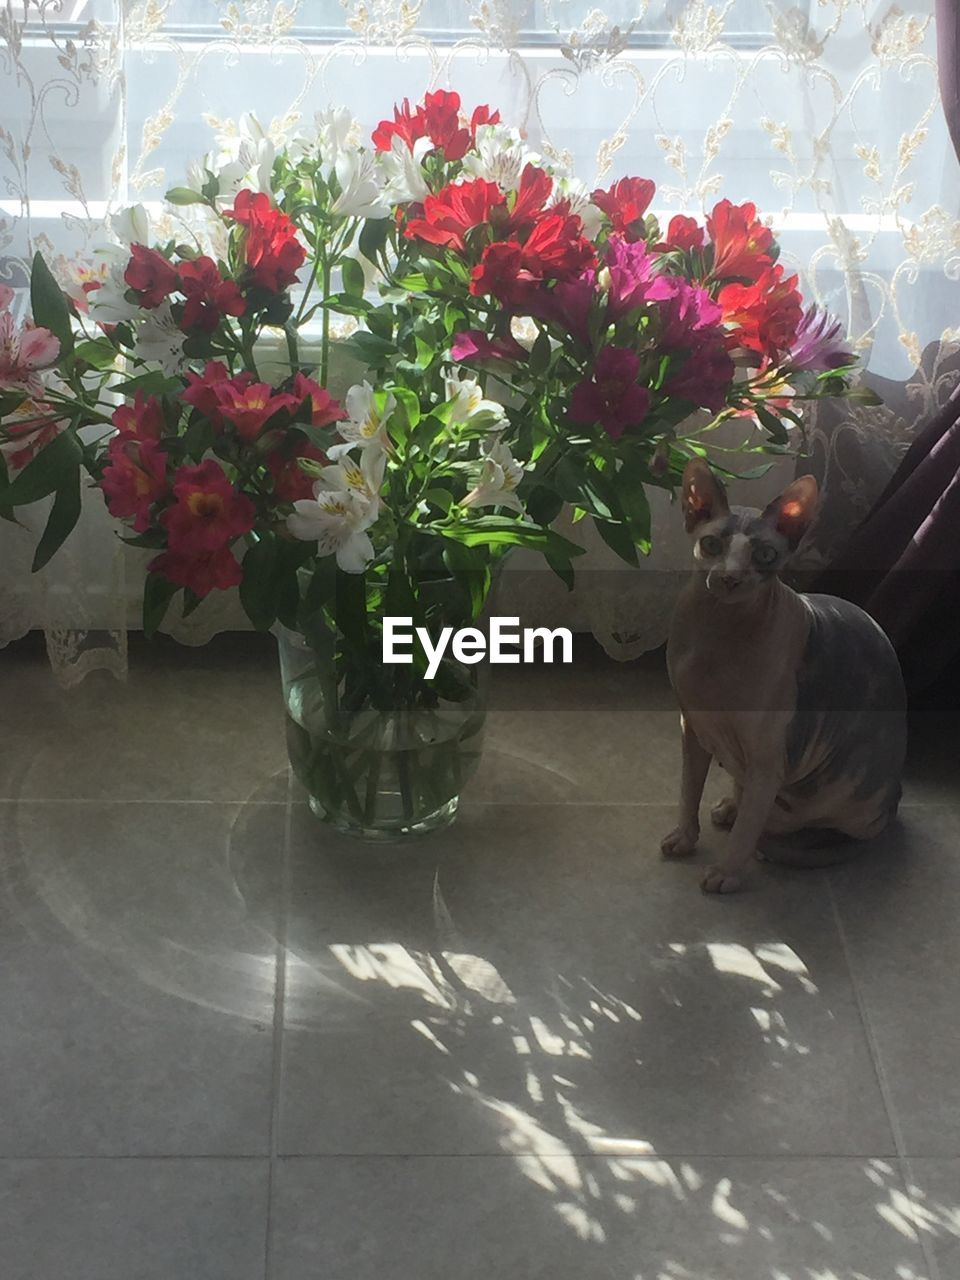 High angle view of cat sitting by flowers in vase on floor